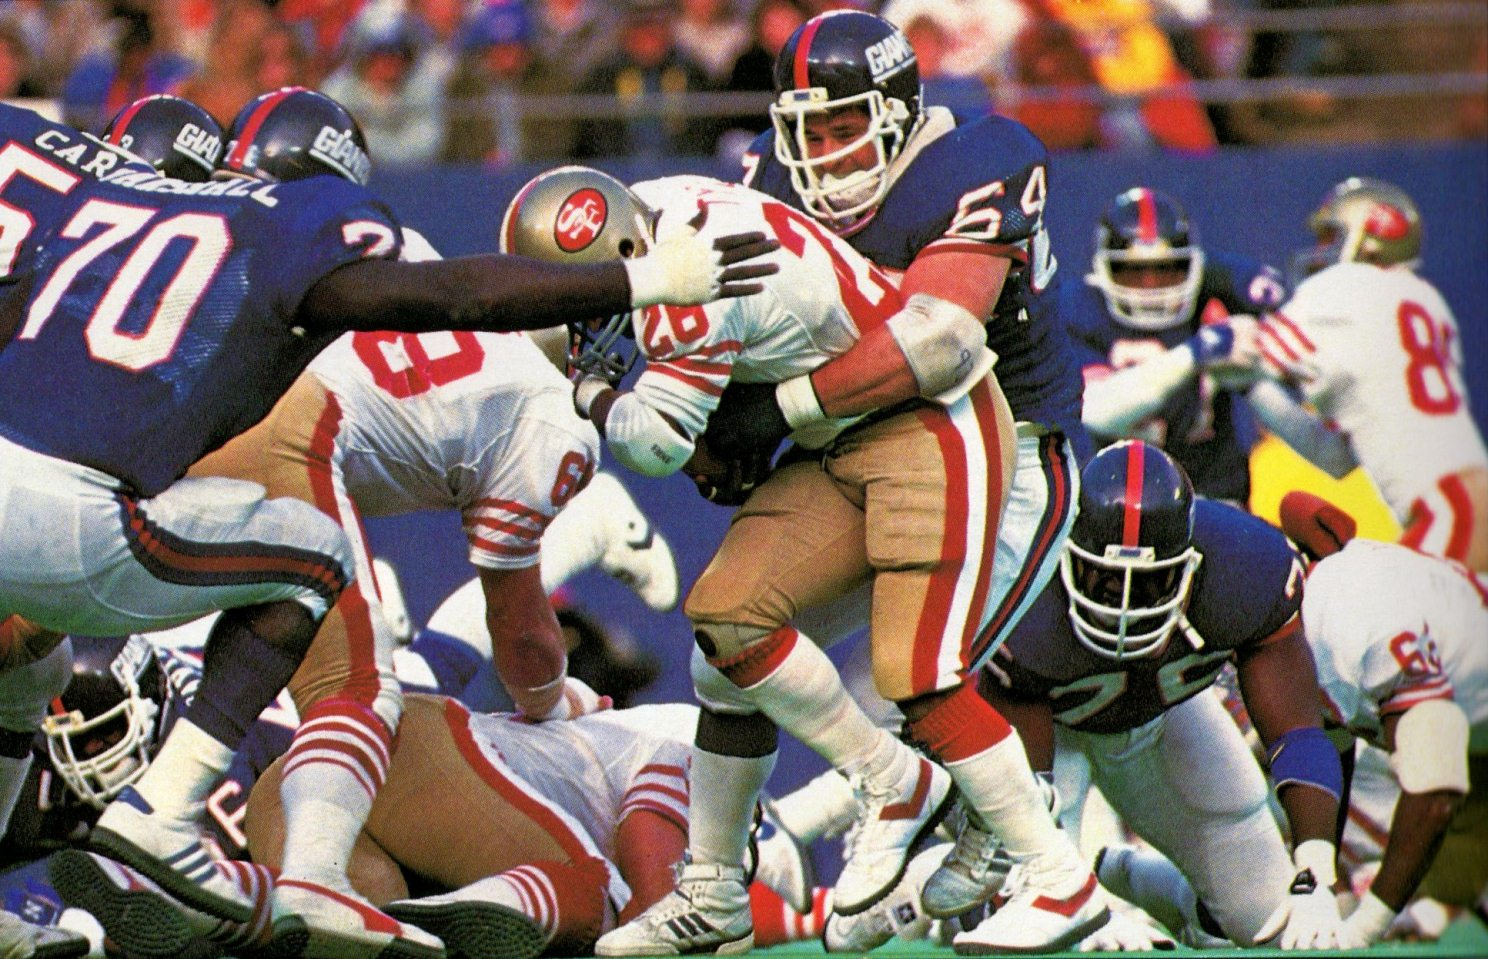 Leonard Marshall (70) and Jim Burt (64), New York Giants (December 29, 1985)